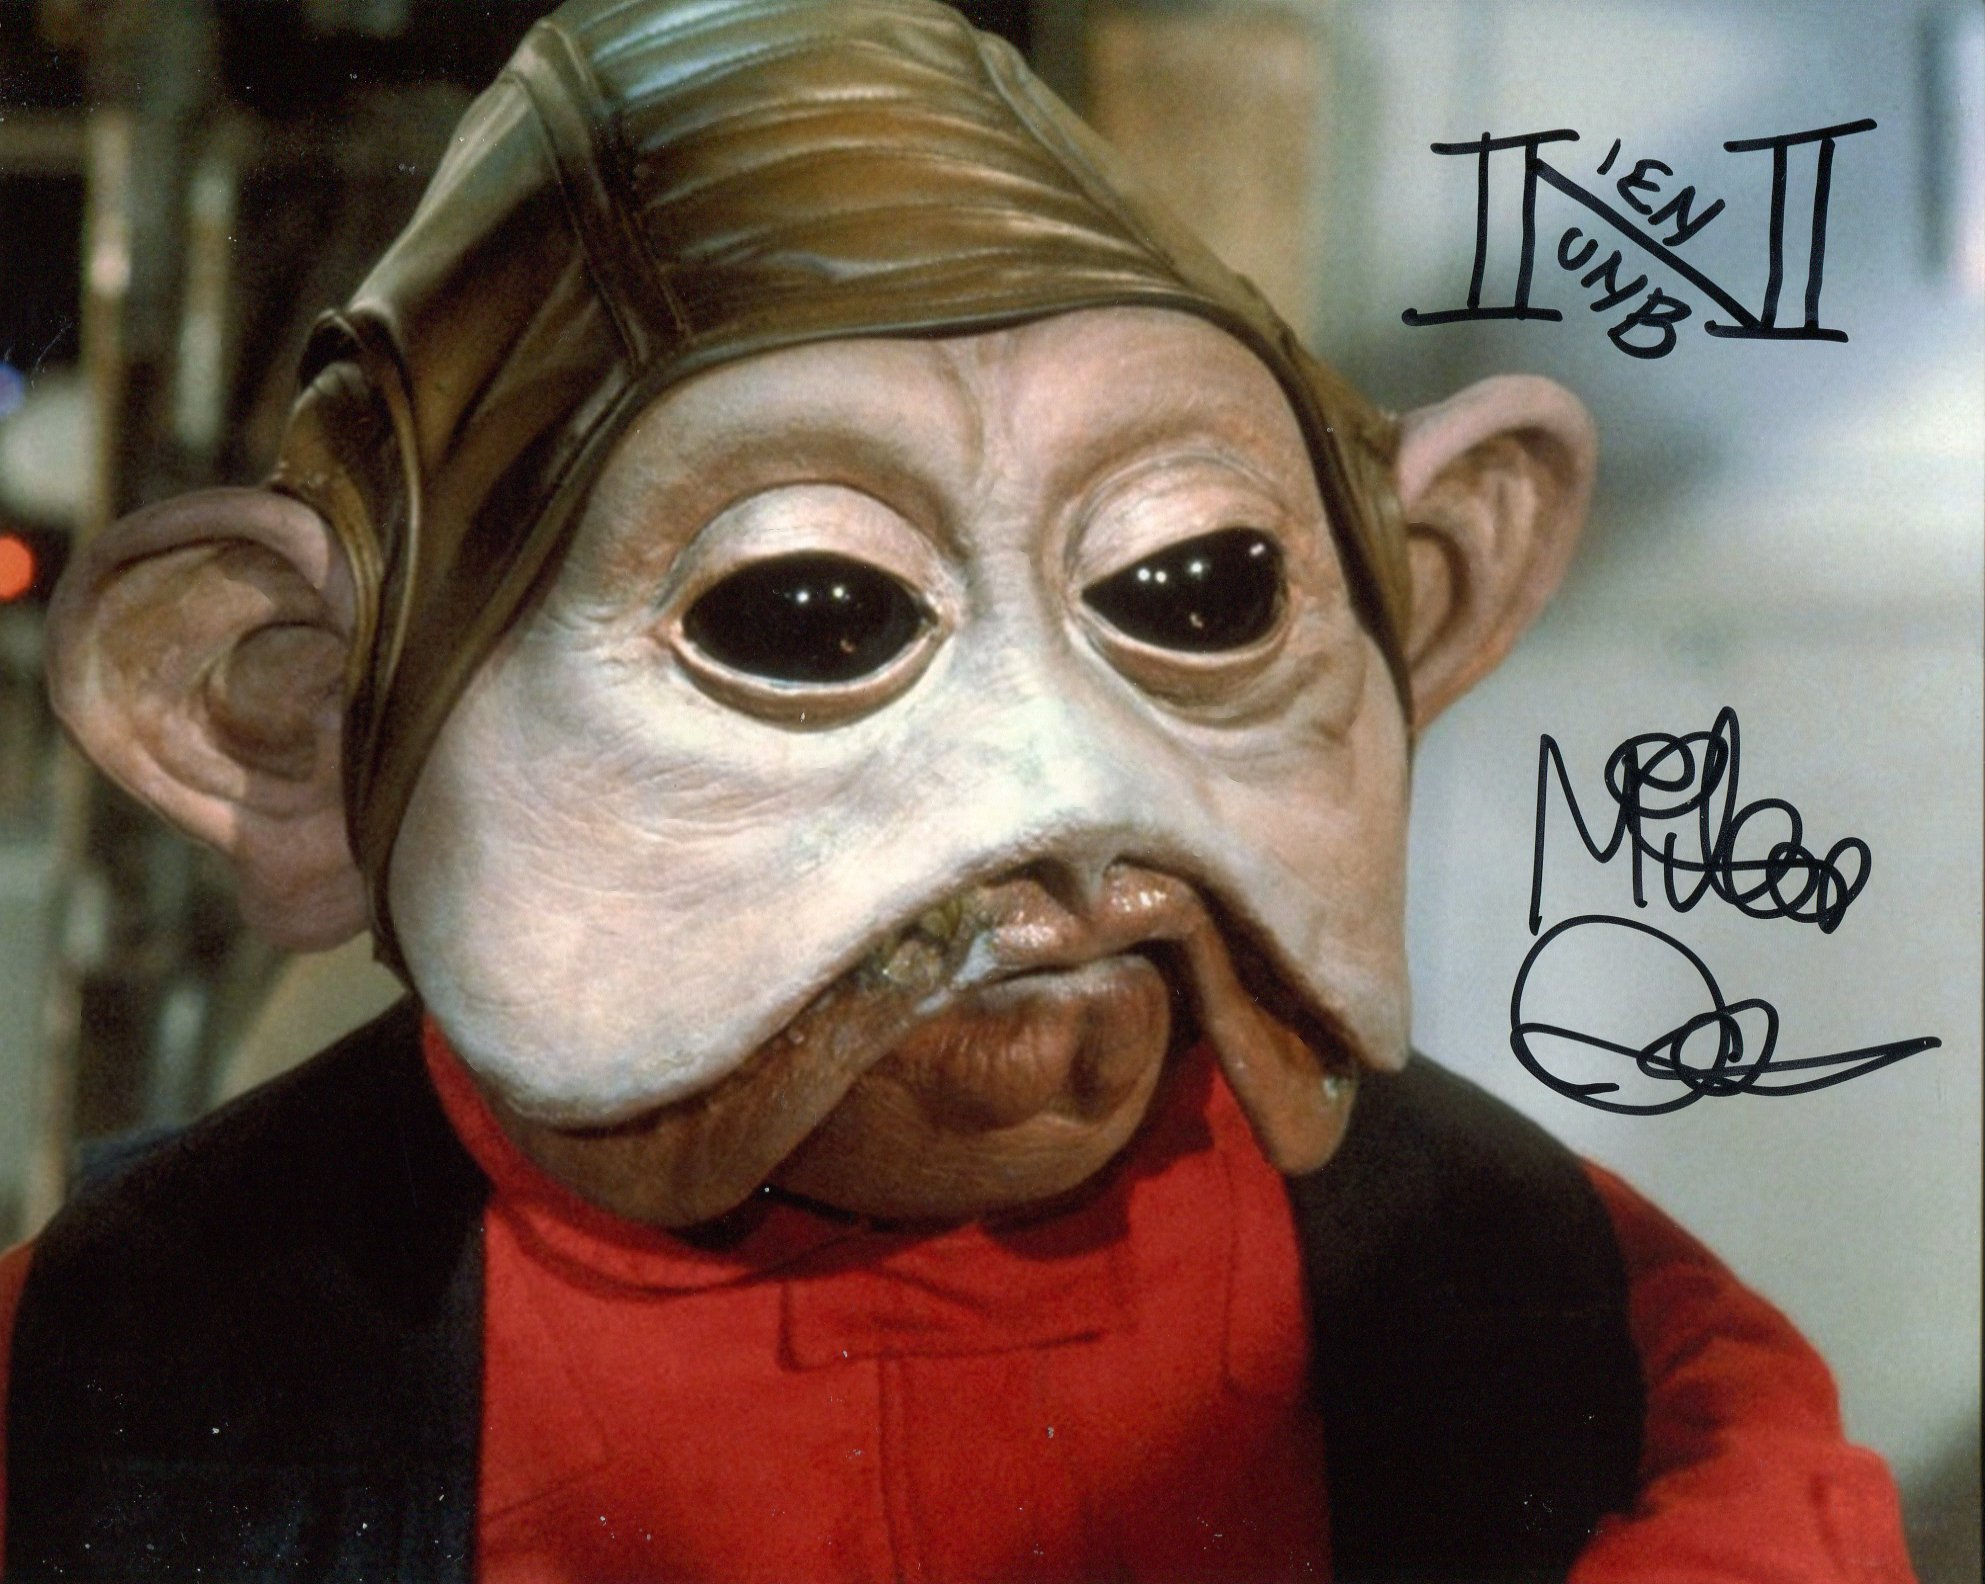 Star Wars 8x10 photo signed by actor Mike Quinn as Nein Numb in return of the Jedi. Good